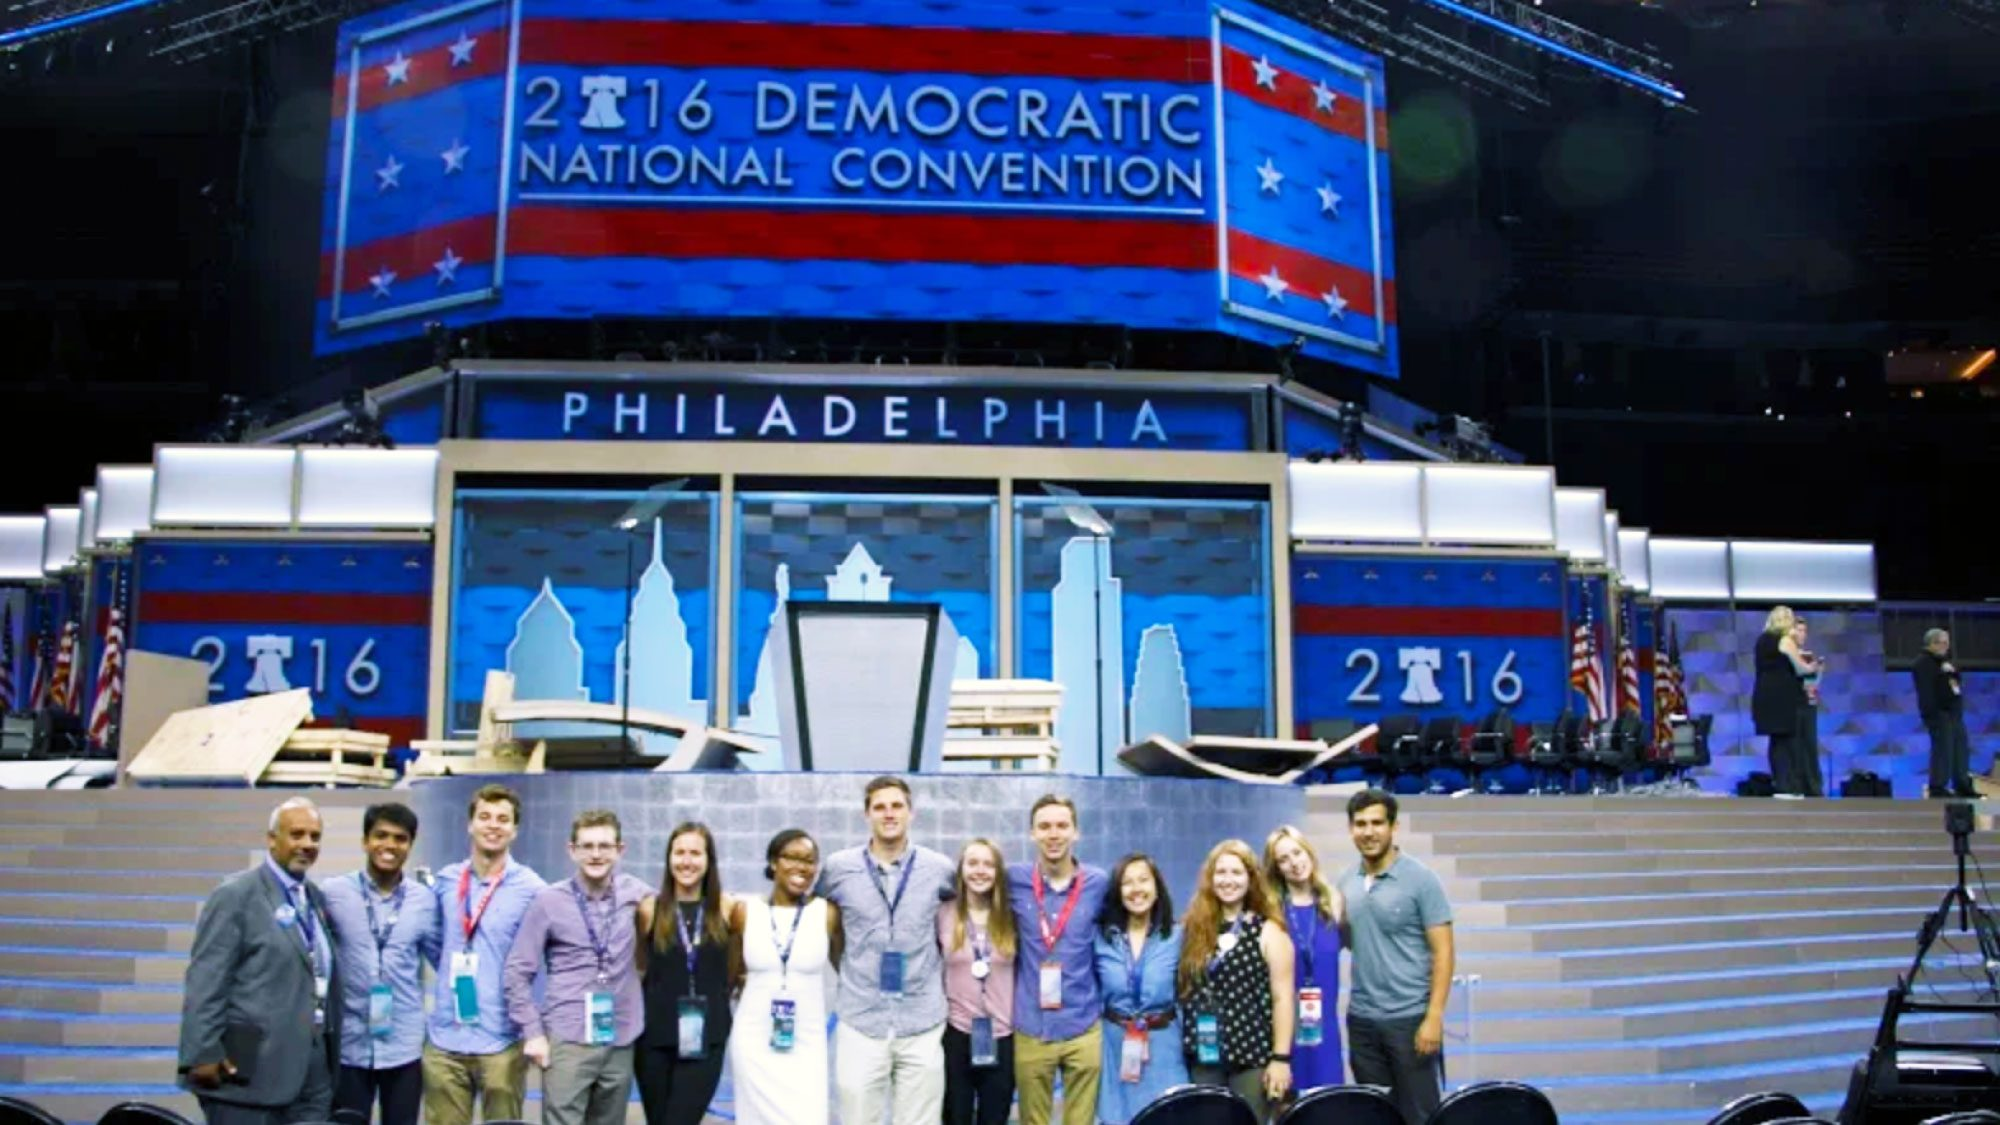 Hoyas at the DNC - stadning together at the front of the stage in Philly